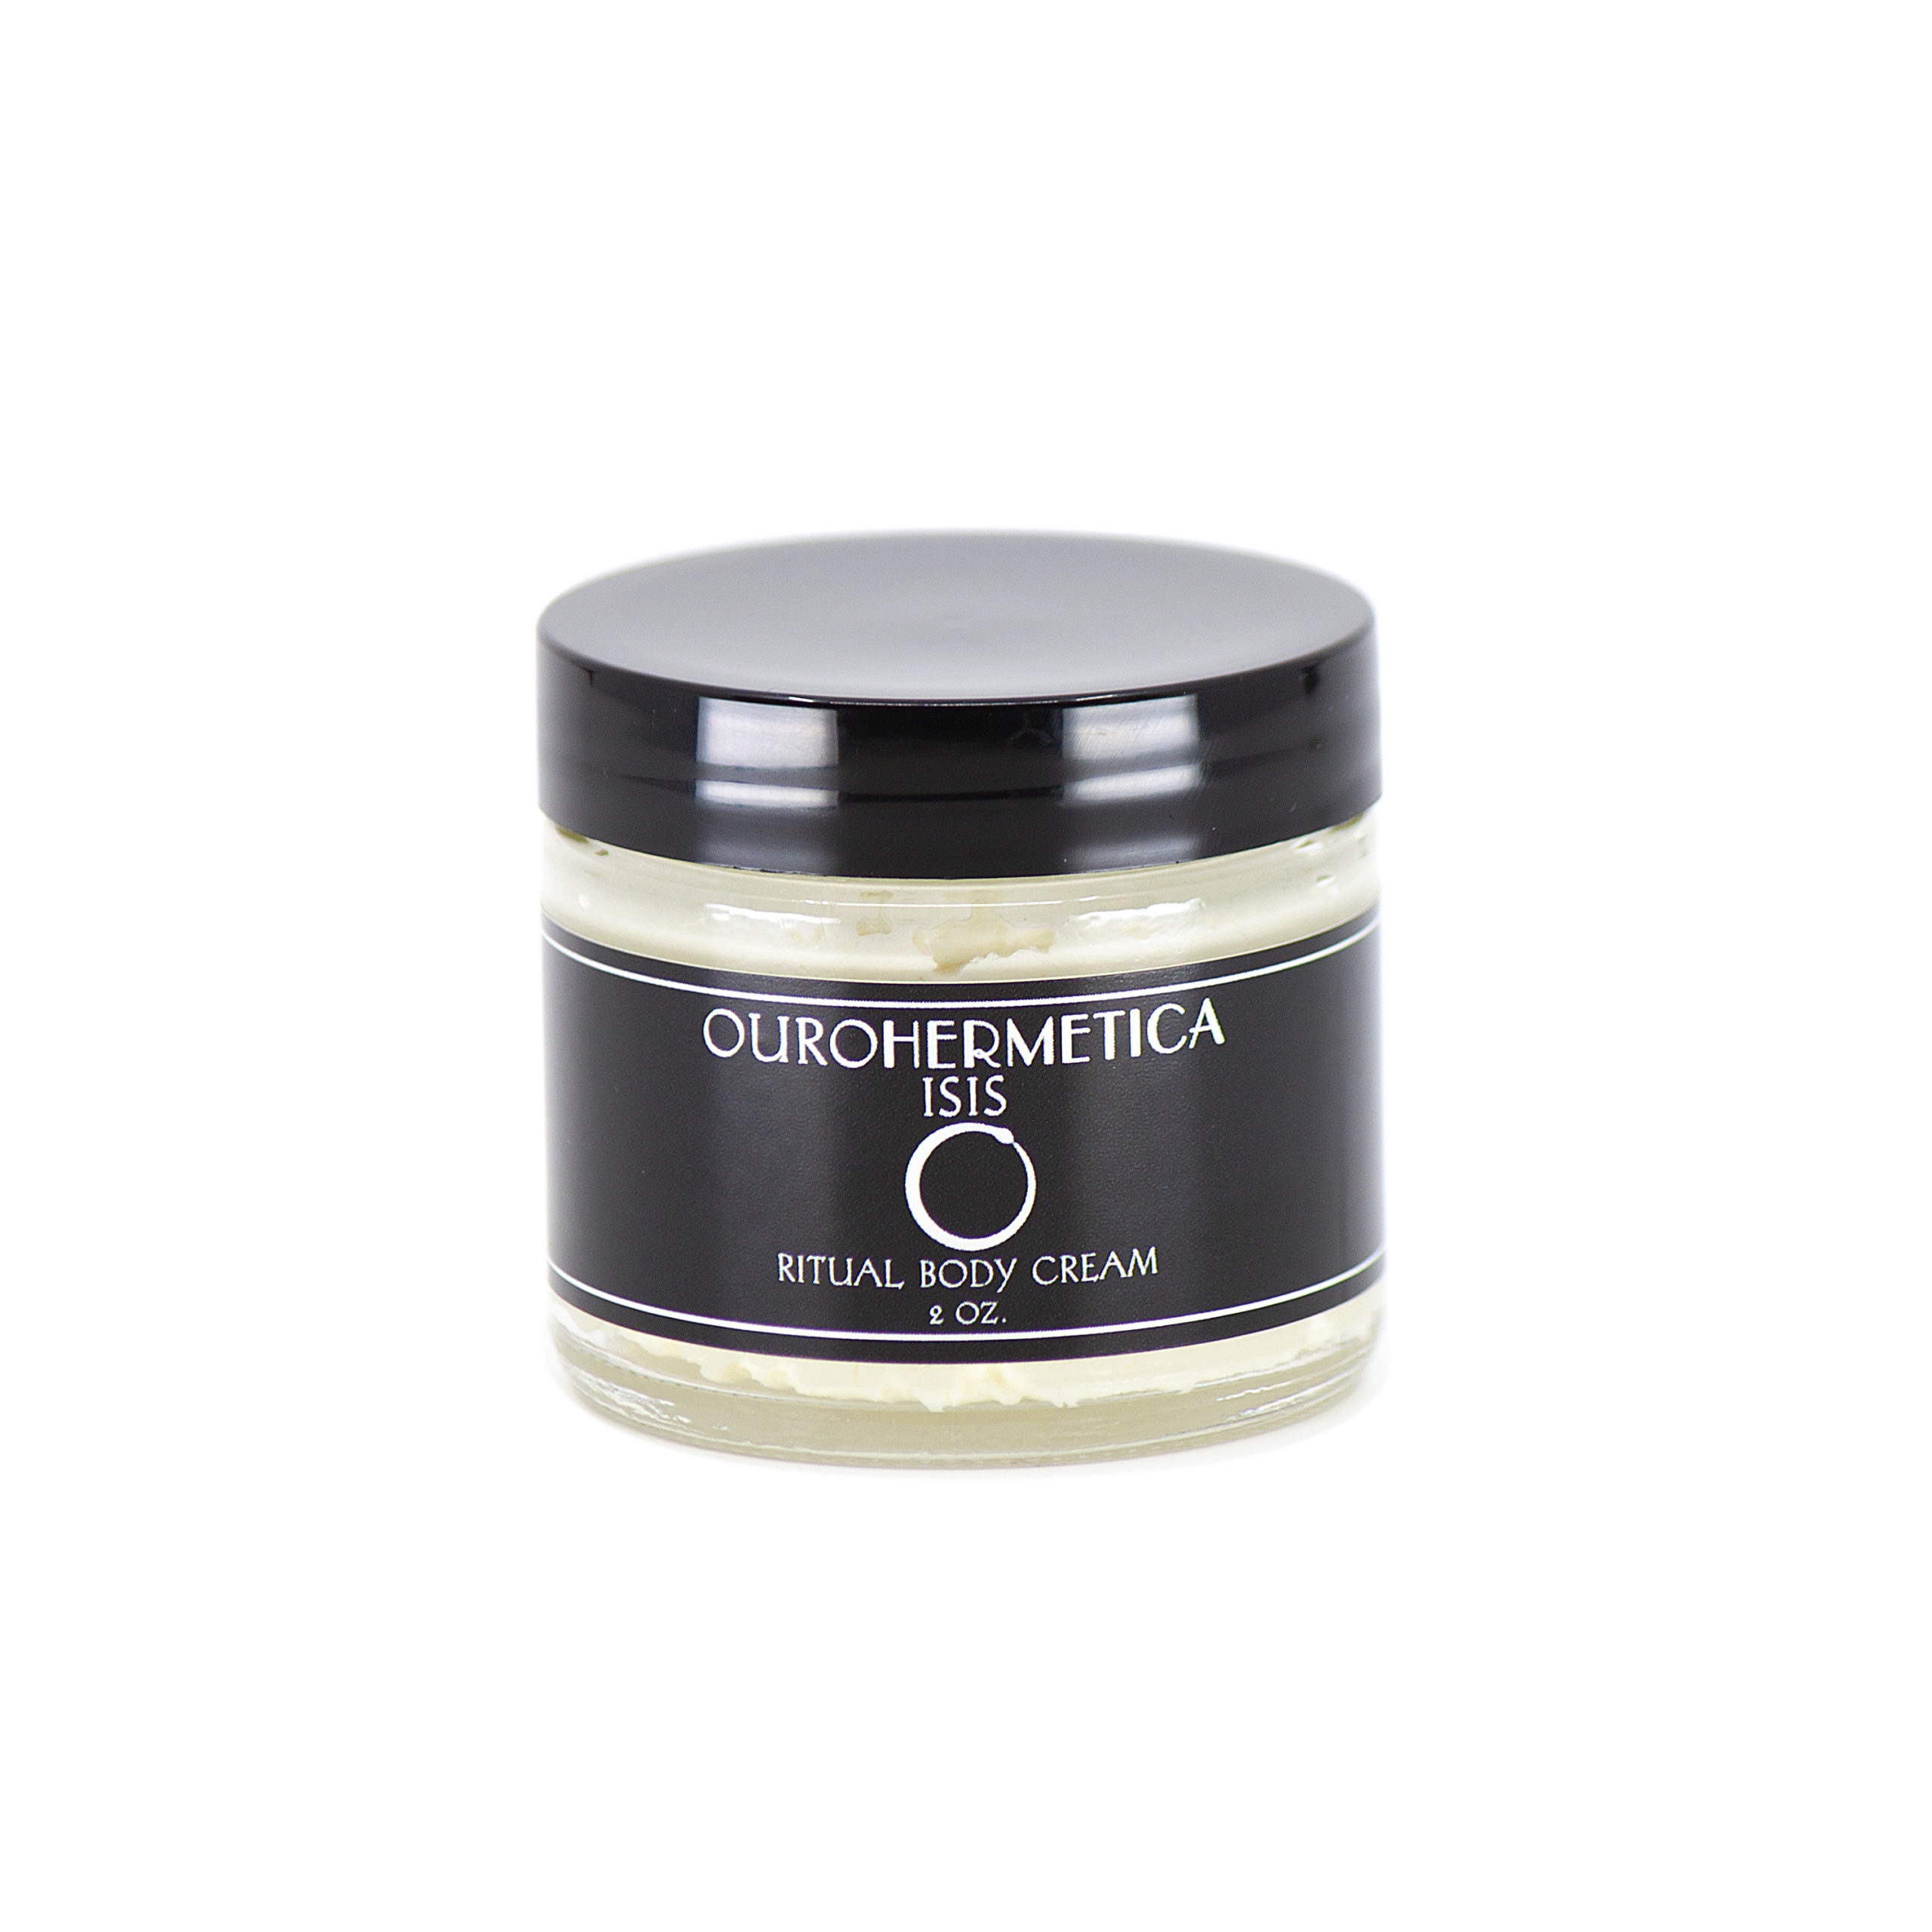 OuroHermetica ritual skin cream in clear glass jar with black label with white ouroboros logo